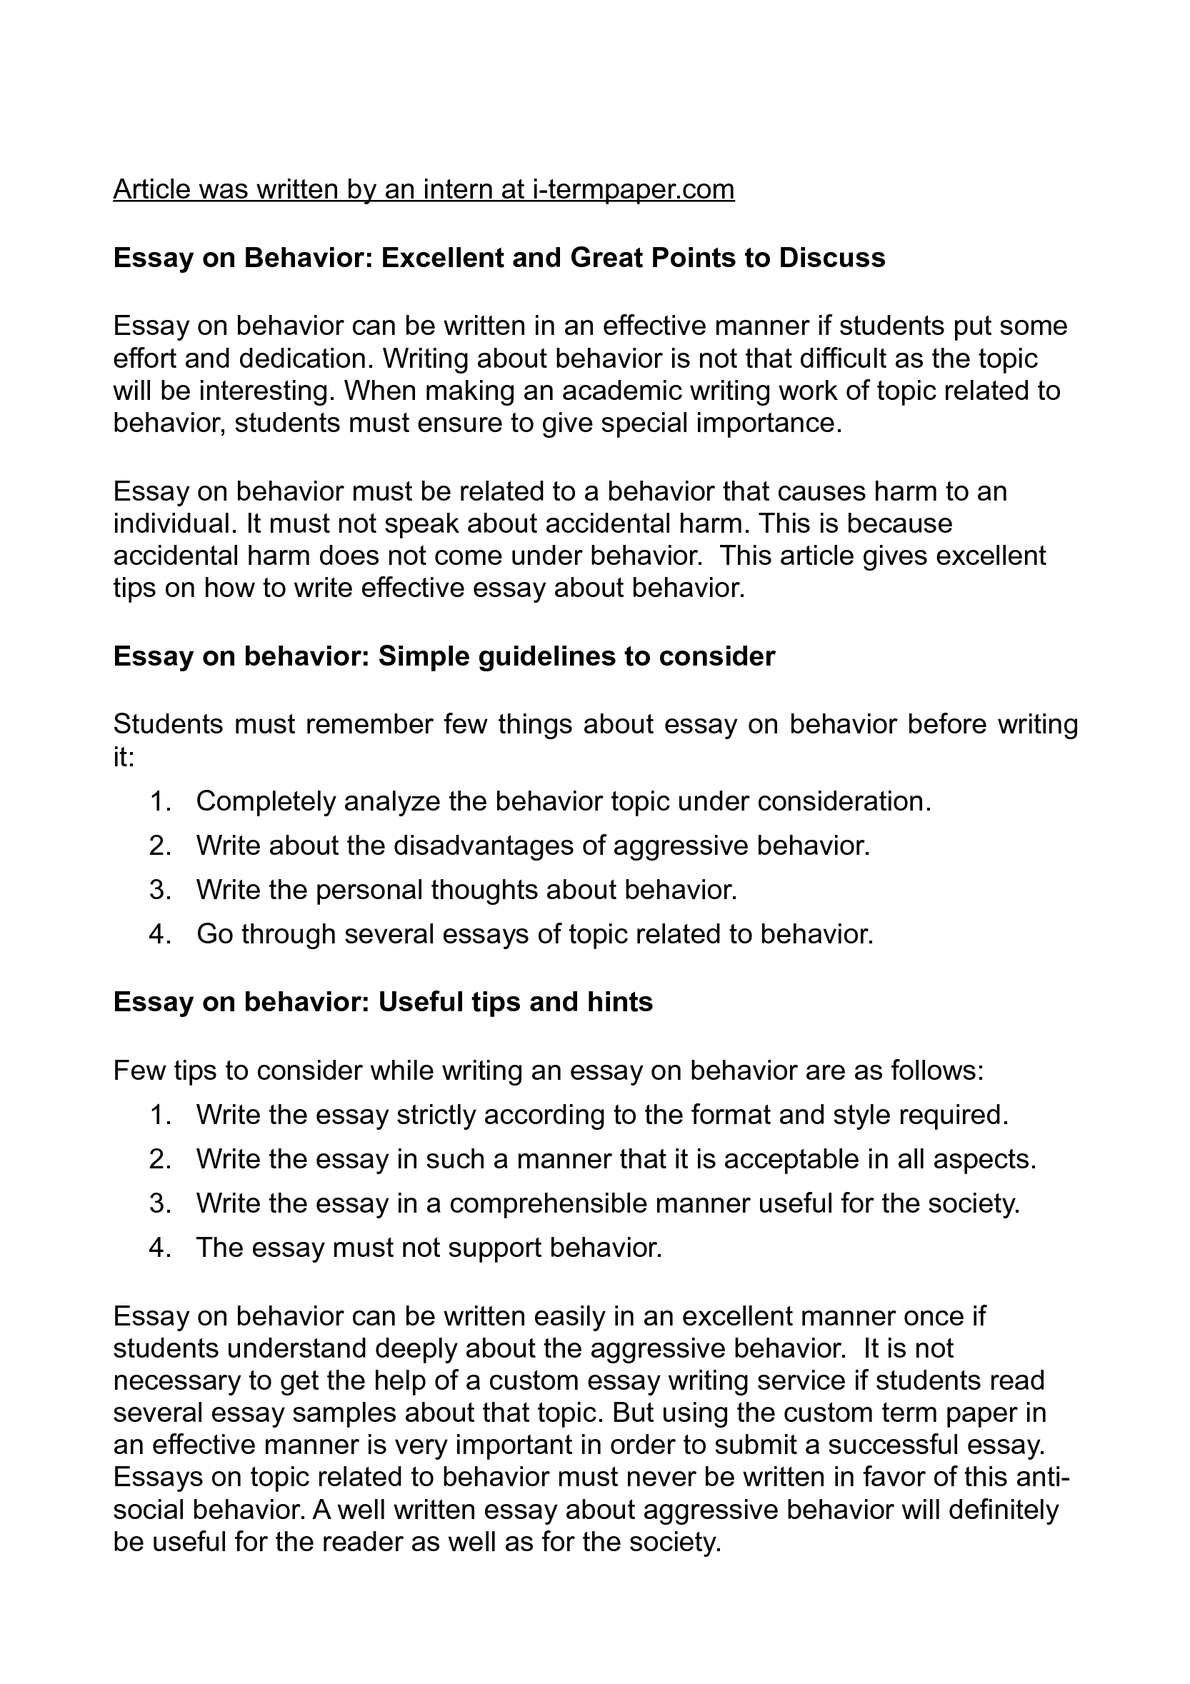 Calam o essay on behavior excellent and great points to discuss